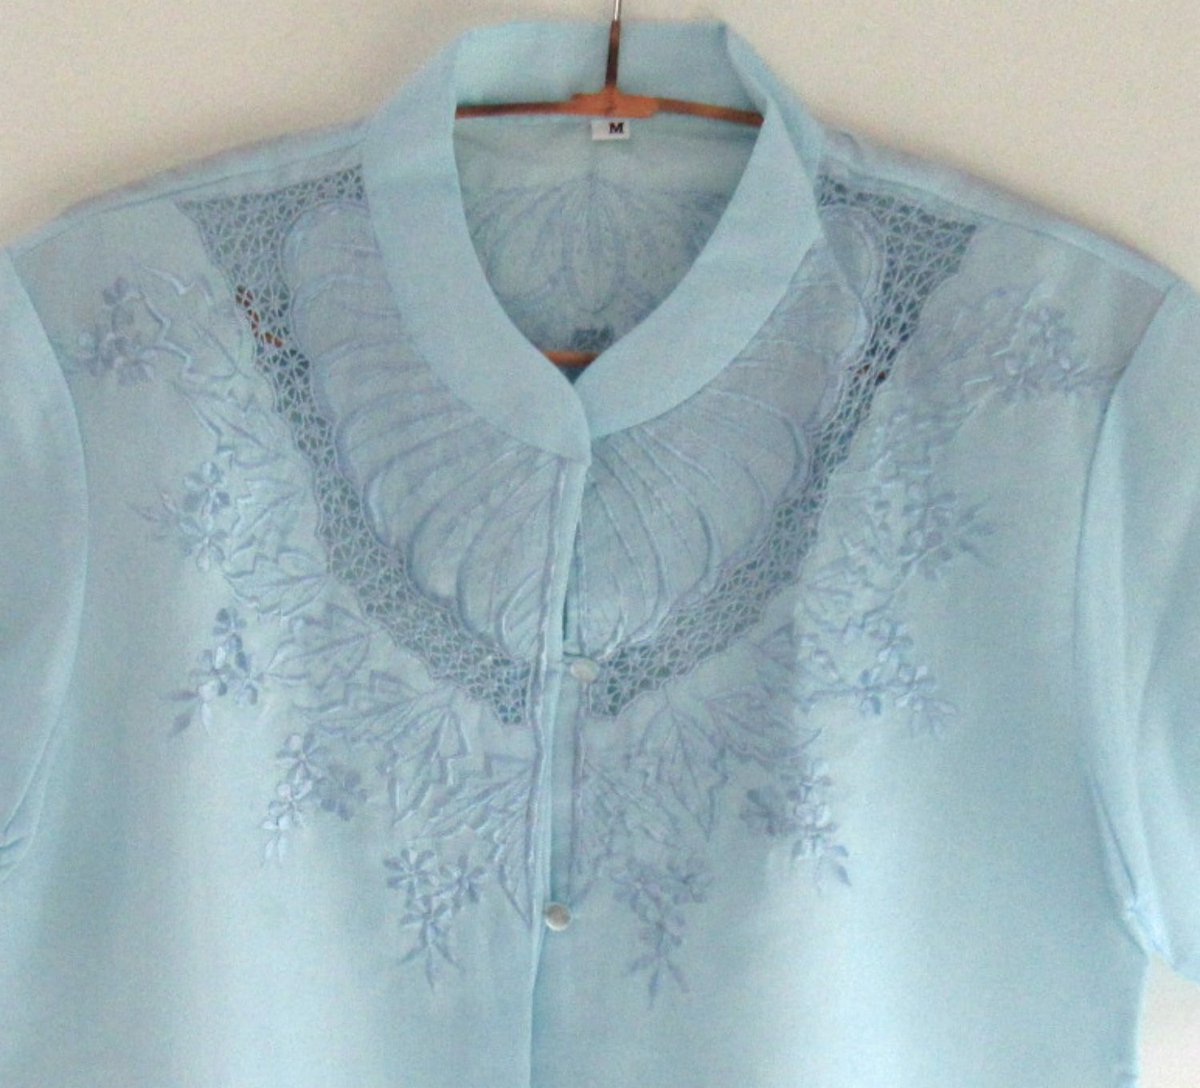 9b1aa89a Button Down Embroidered Blouse, Retro Short Sleeve #LadiesTop, Unused  vintage, Powder Blue Linen Blouse #clothing #women #blouse #blue  #Eastergifts ...